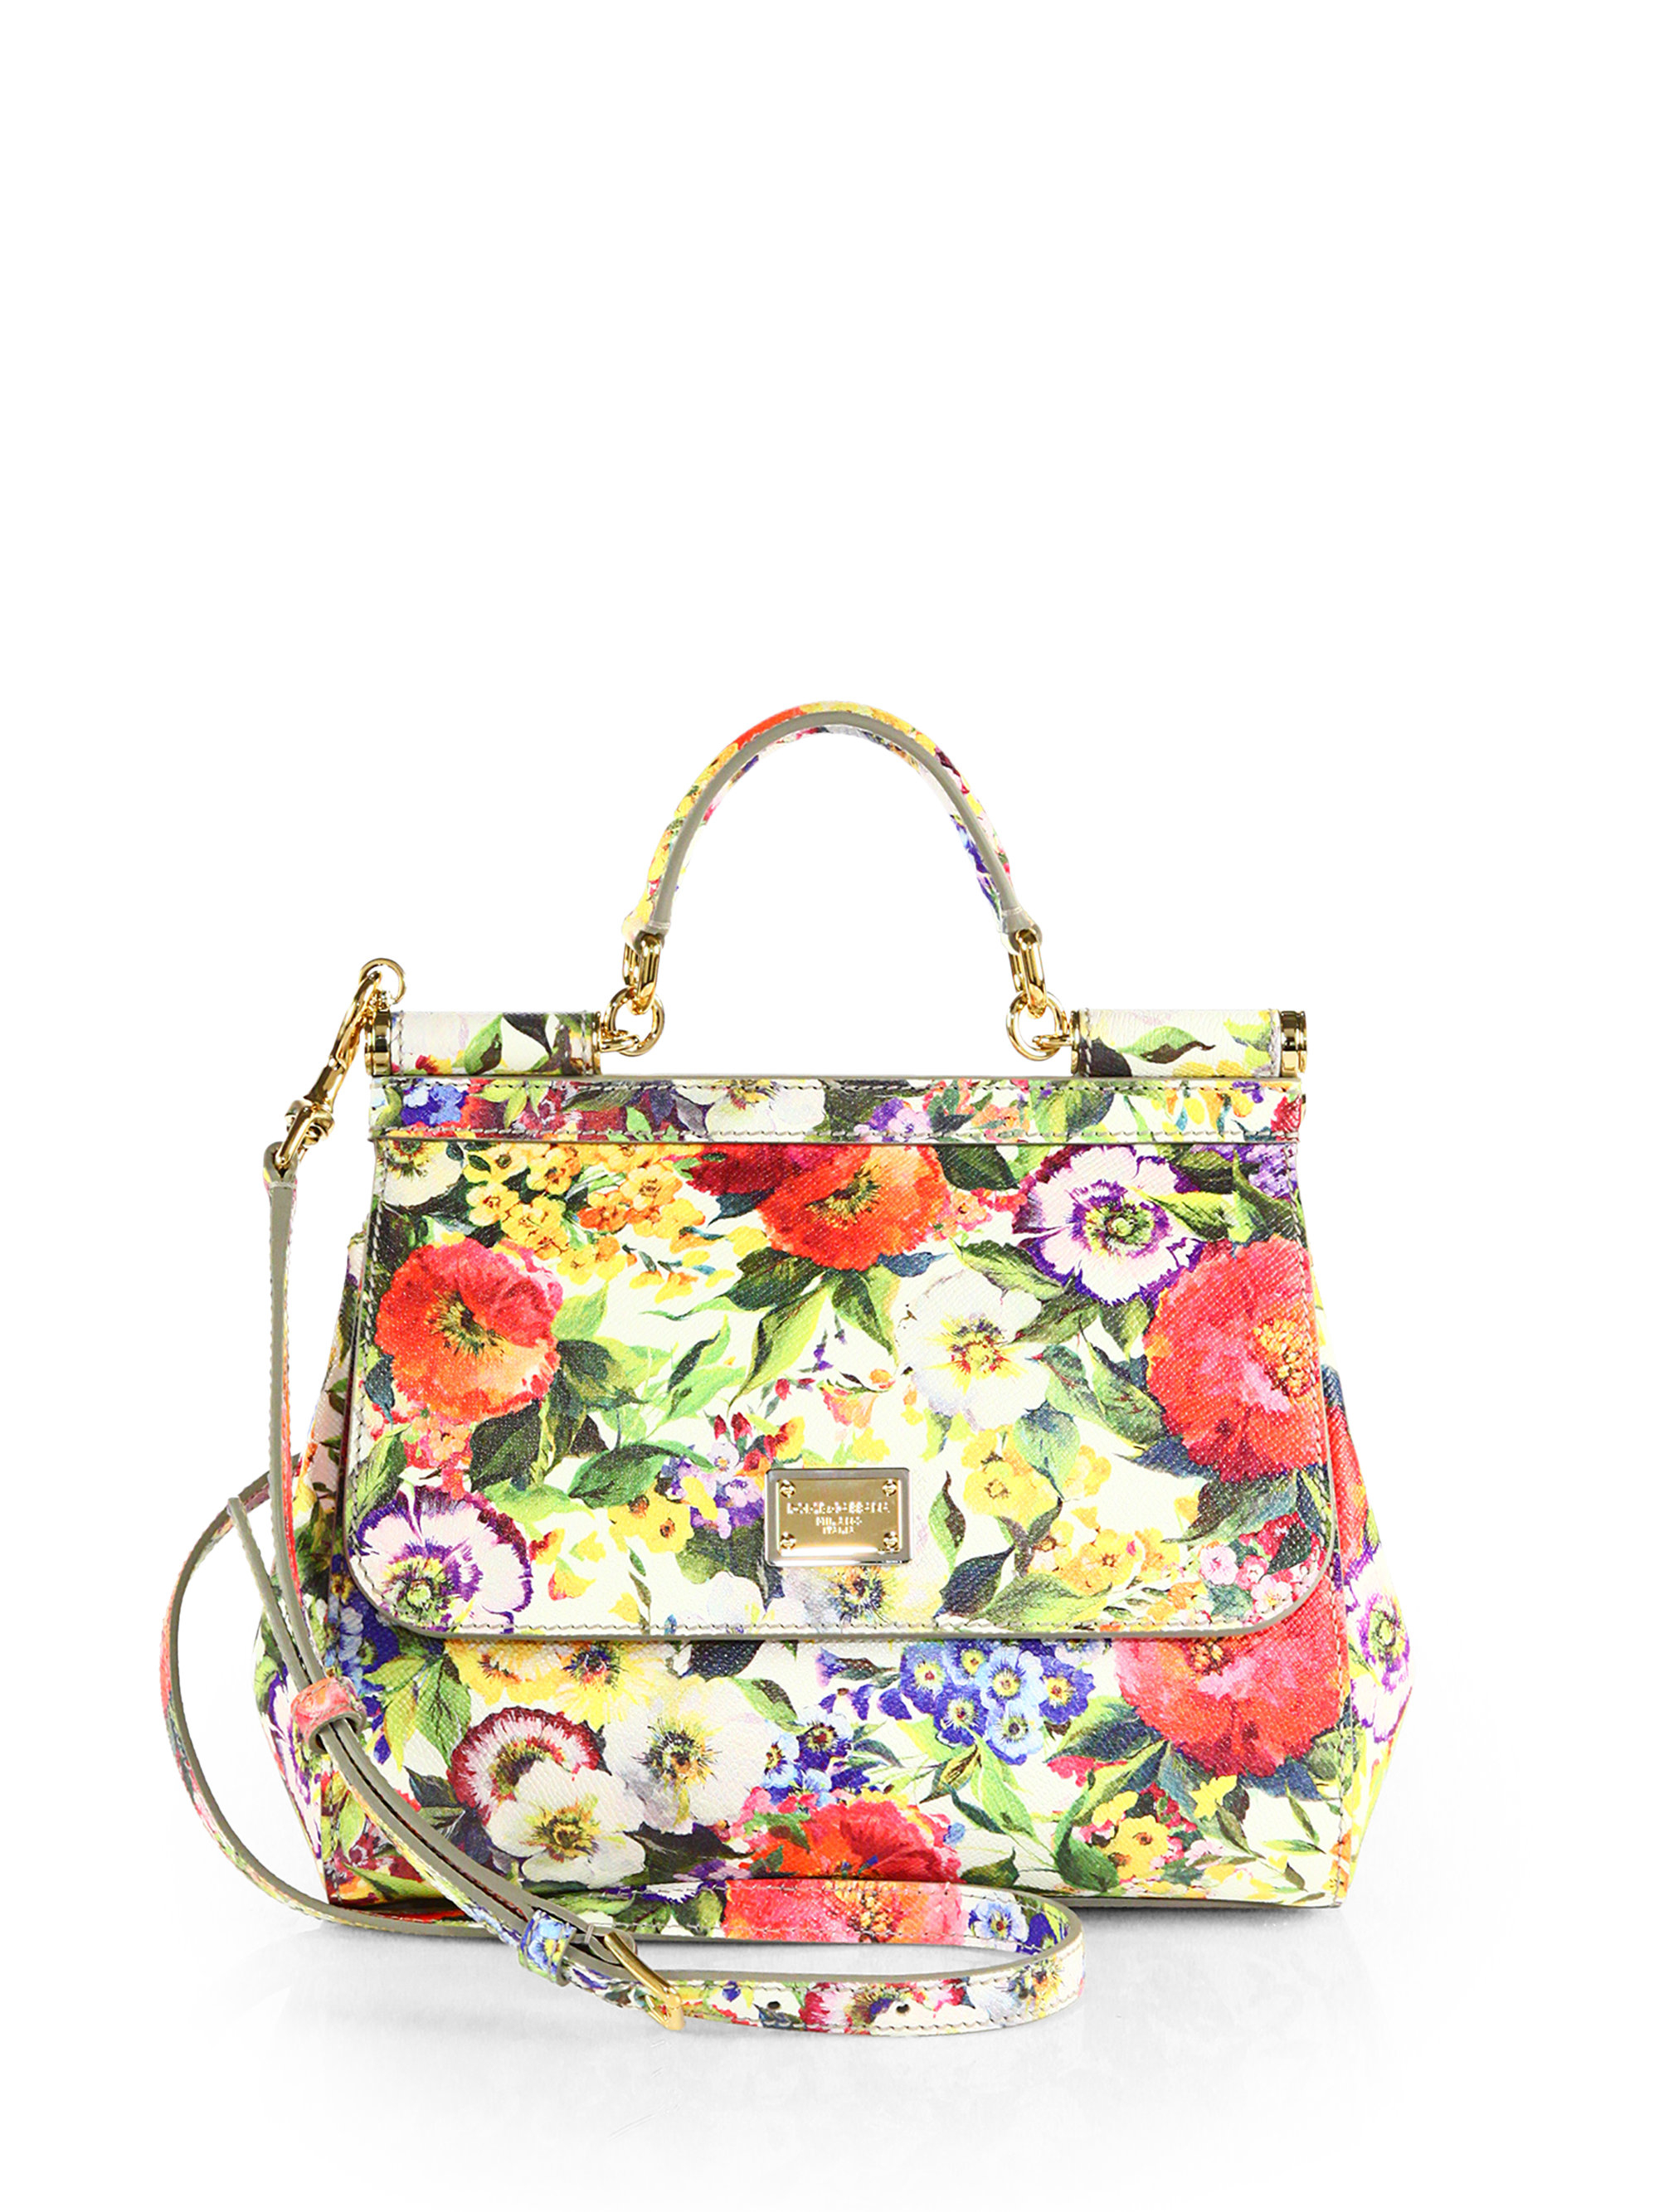 6132f7003ce6 Lyst - Dolce   Gabbana Miss Sicily Floral Leather Bag